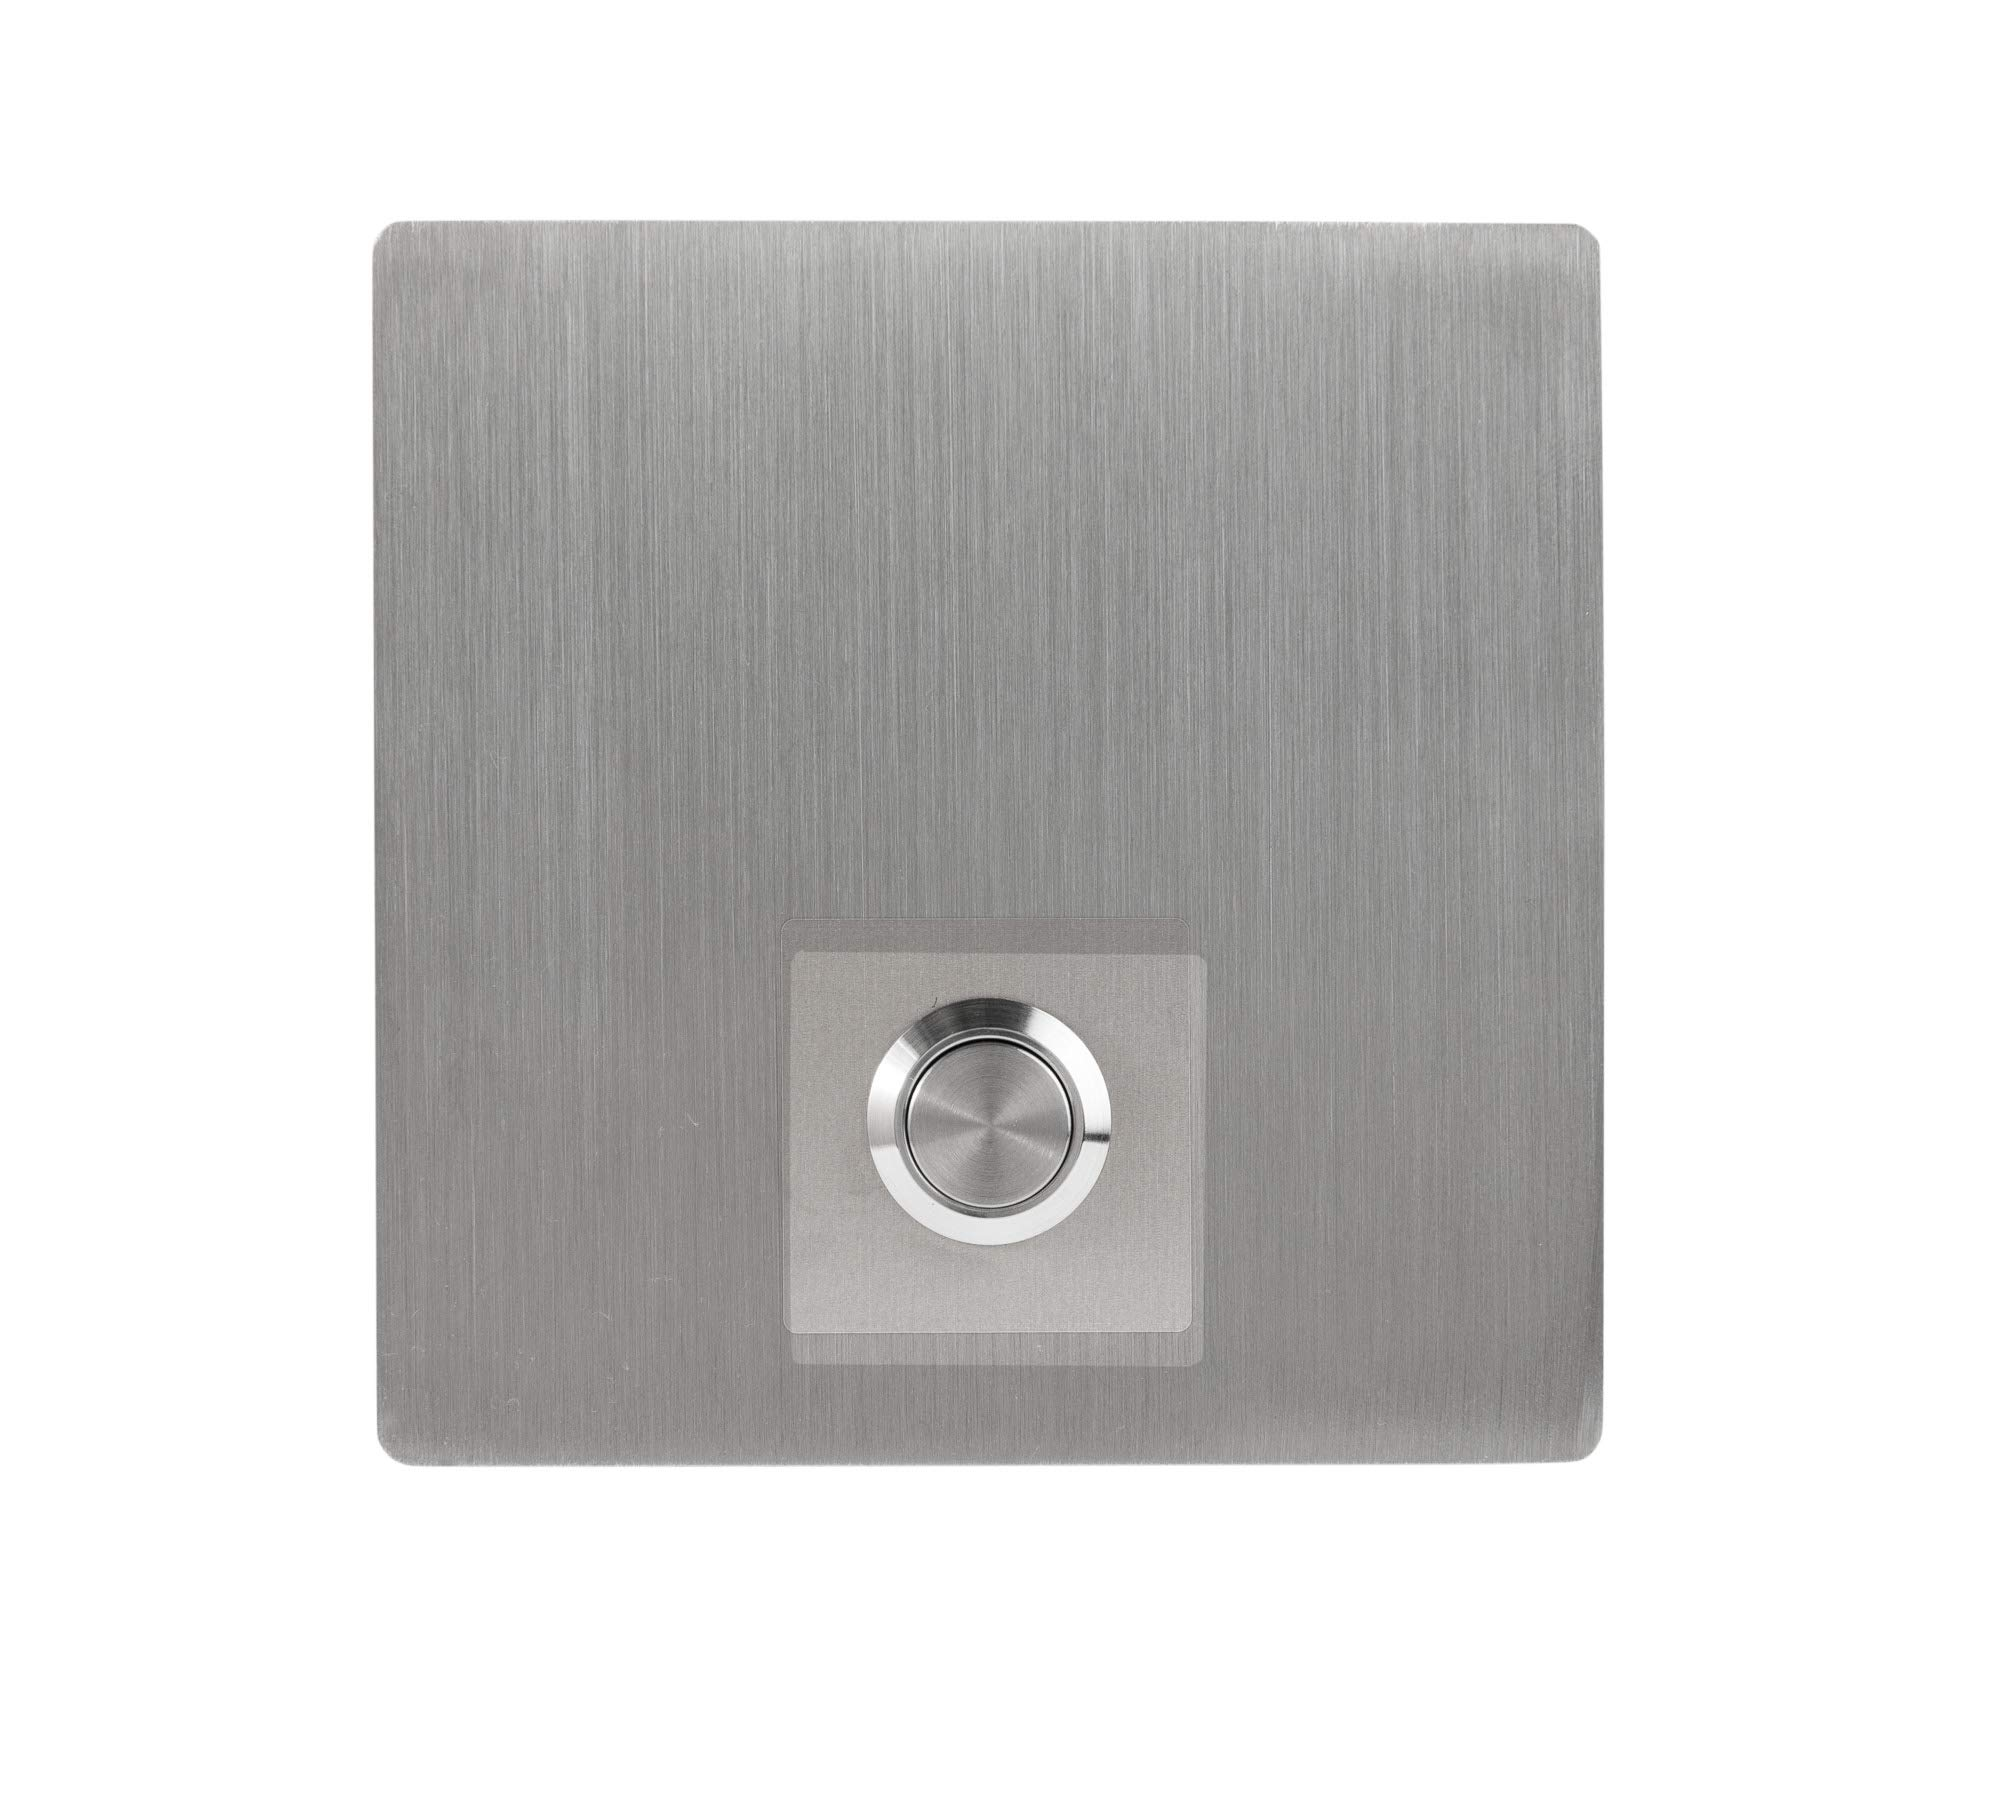 Modern Stainless Hardware Model S3 Stainless Steel Doorbell Button in grade 304 Stainless Steel 4mm thick